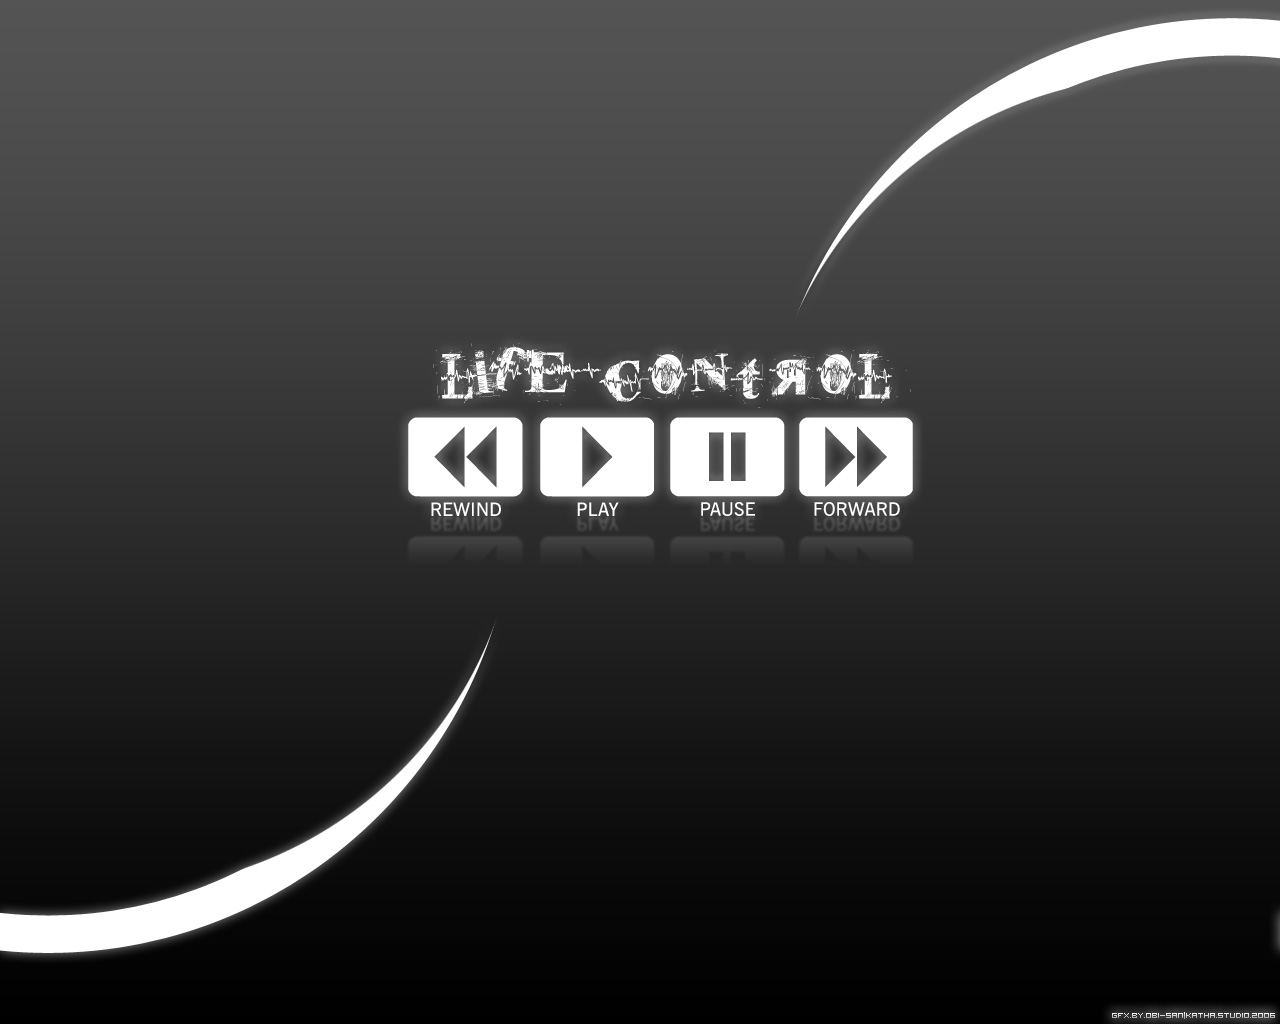 Life Control - wallpaper, black and white, the player control buttons